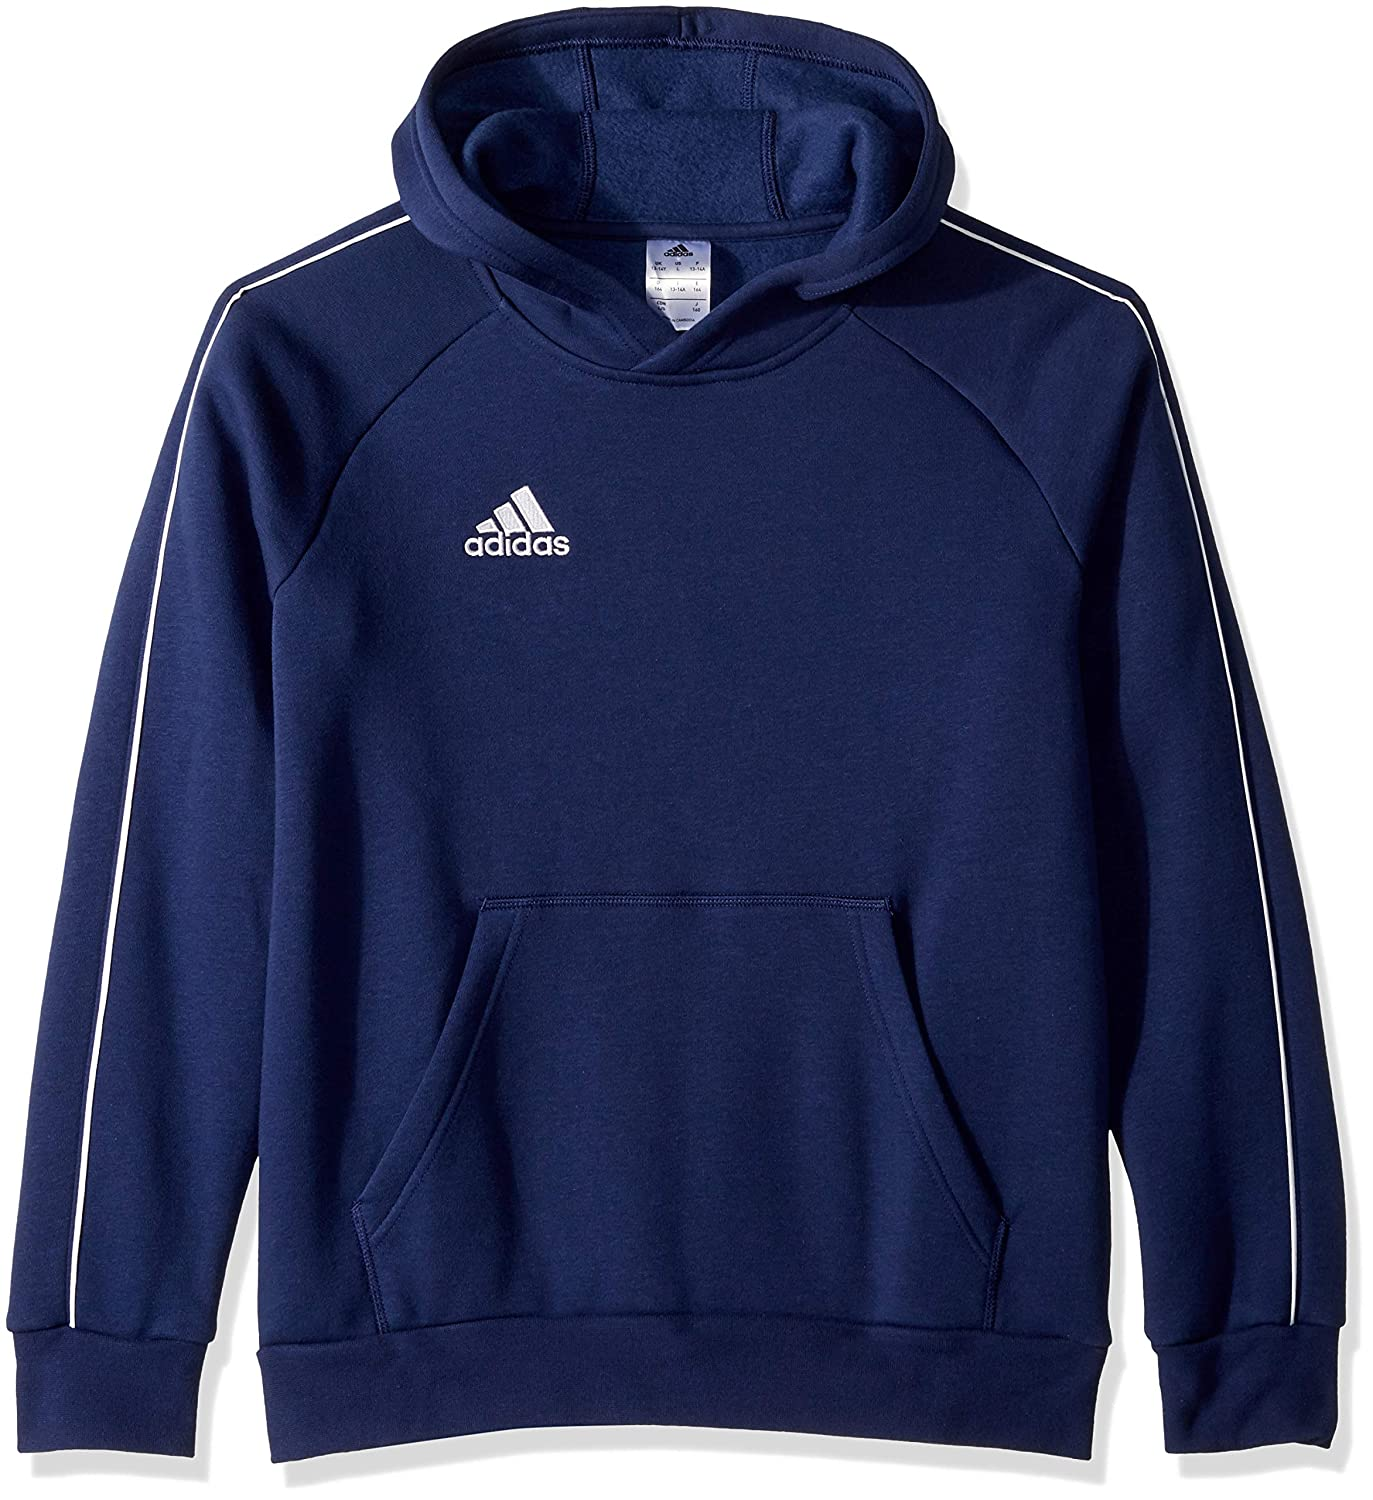 88b945288 Amazon.com: adidas Unisex Youth Soccer Core18 Hoody: Clothing